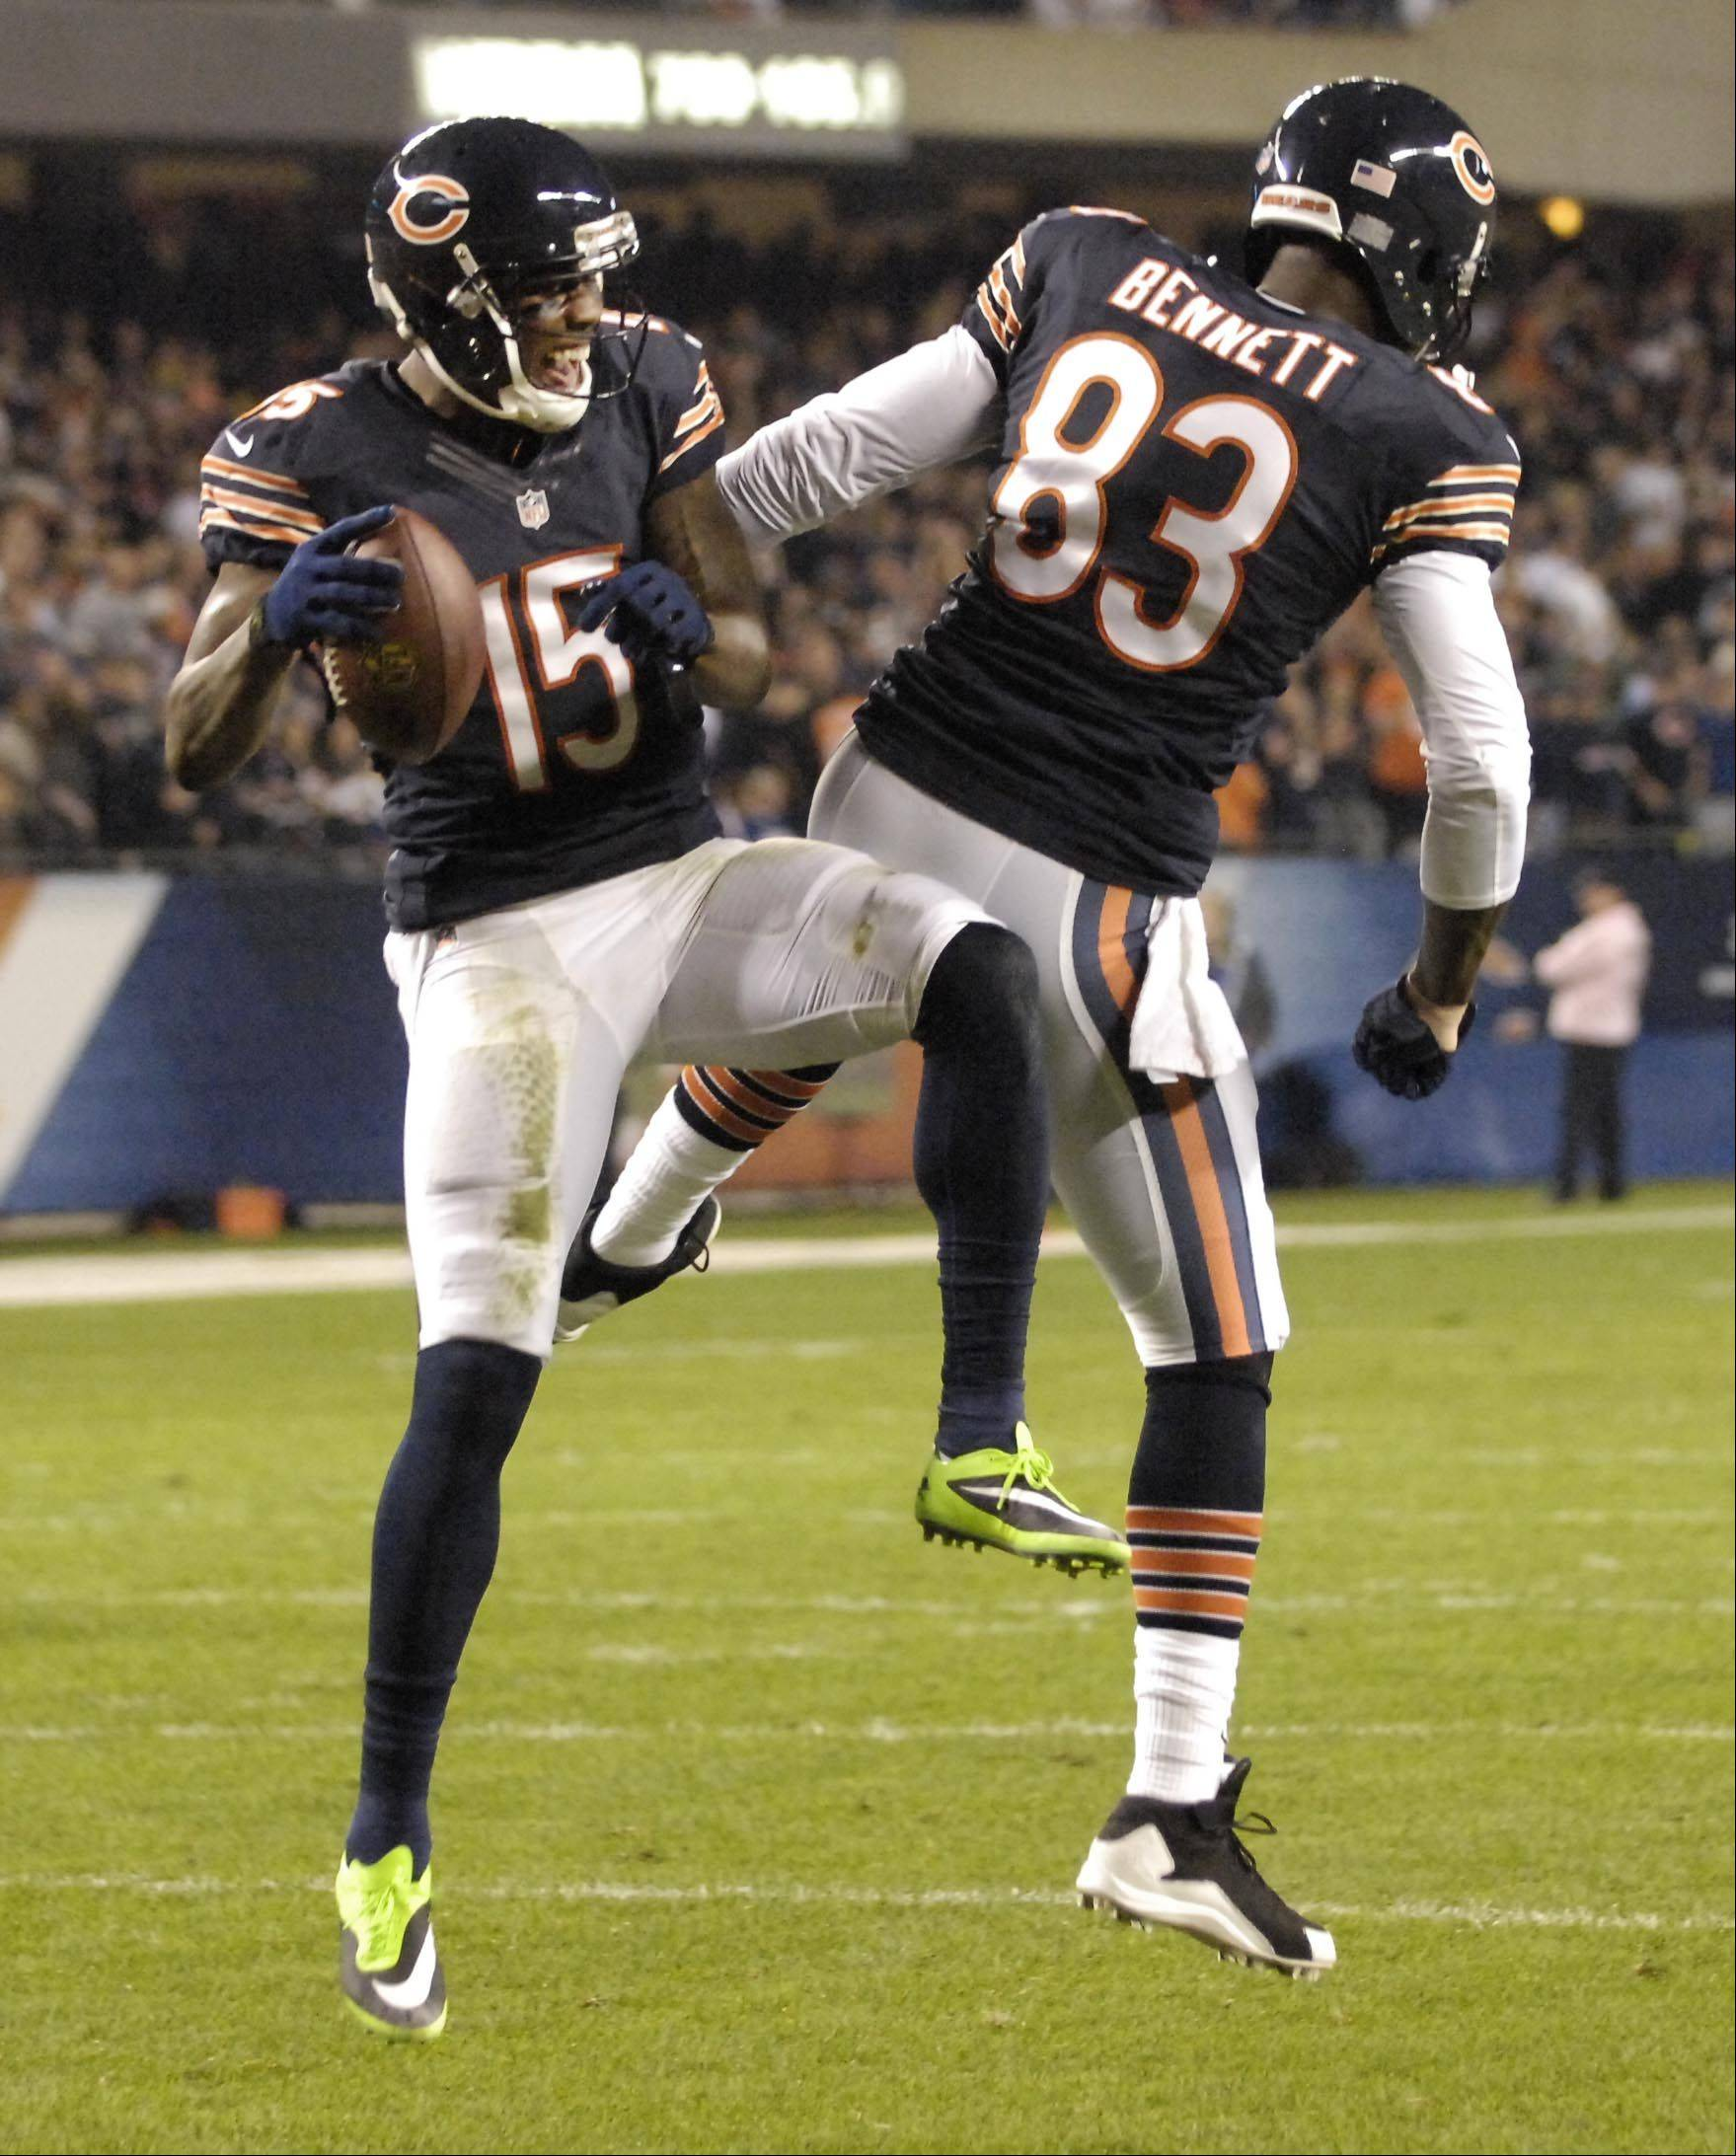 Bears wide receiver Brandon Marshall celebrates his first touchdown with teammate Martellus Bennett on Thursday night at Soldier Field in Chicago.